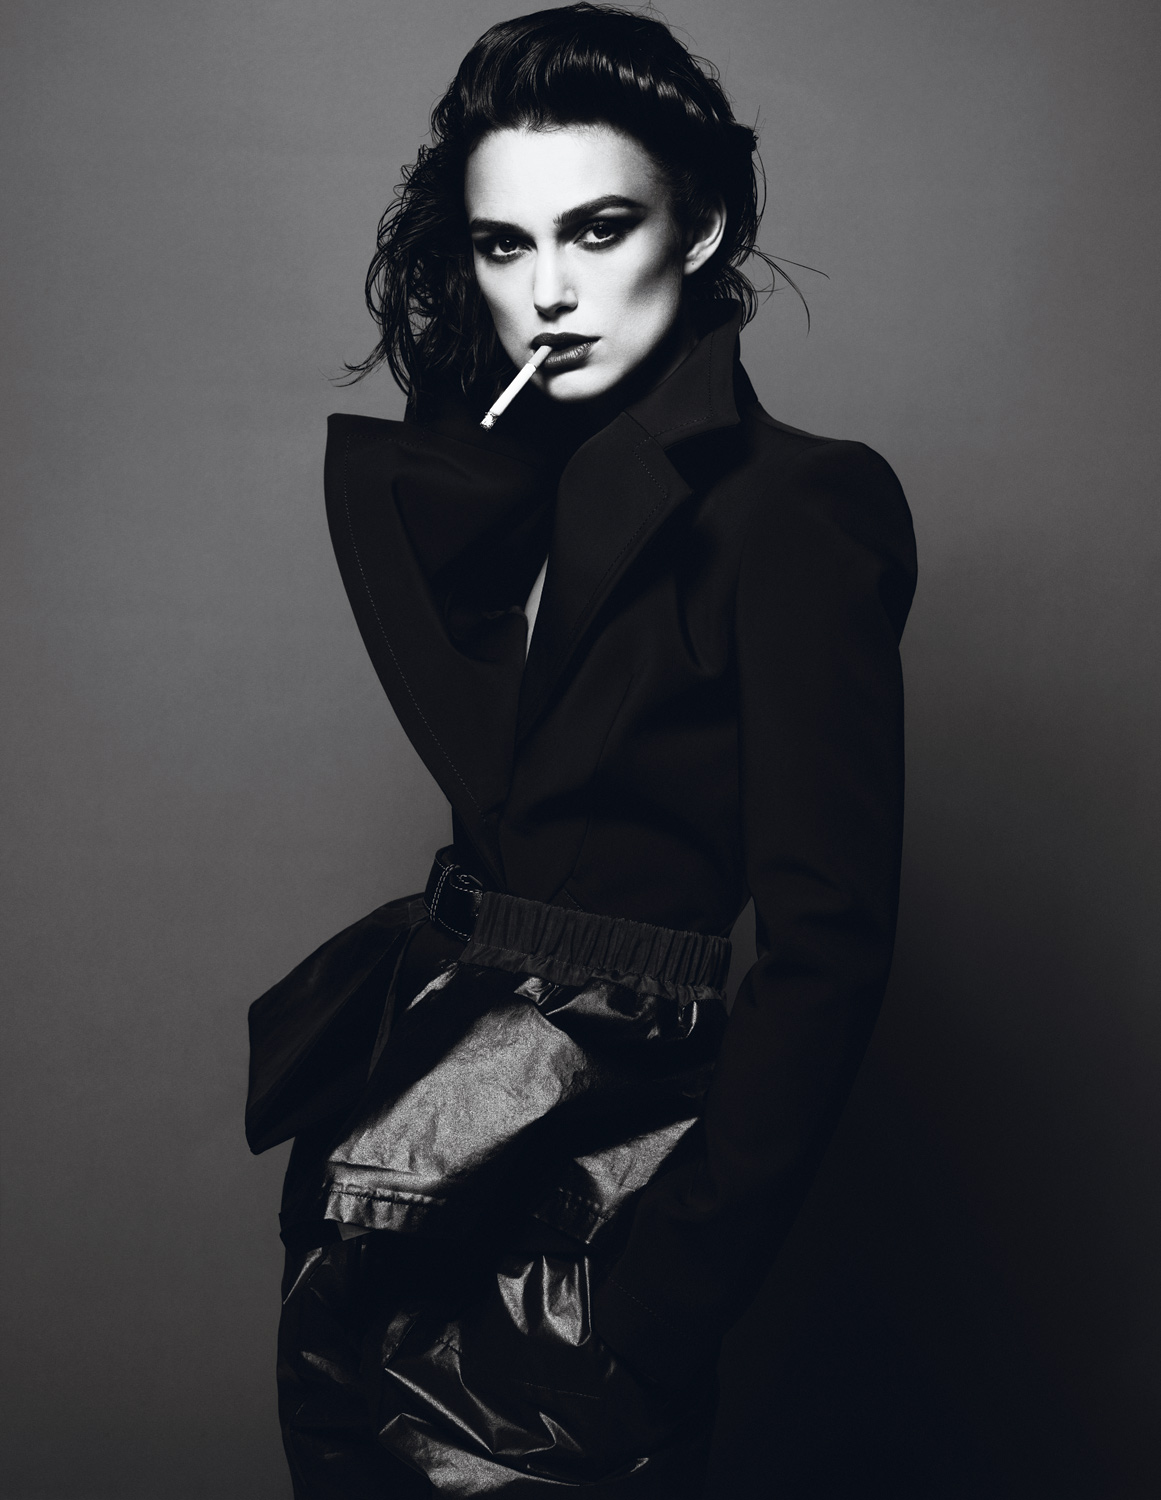 Keira Knightley In Interview Magazine April 2012 By Mert -3545